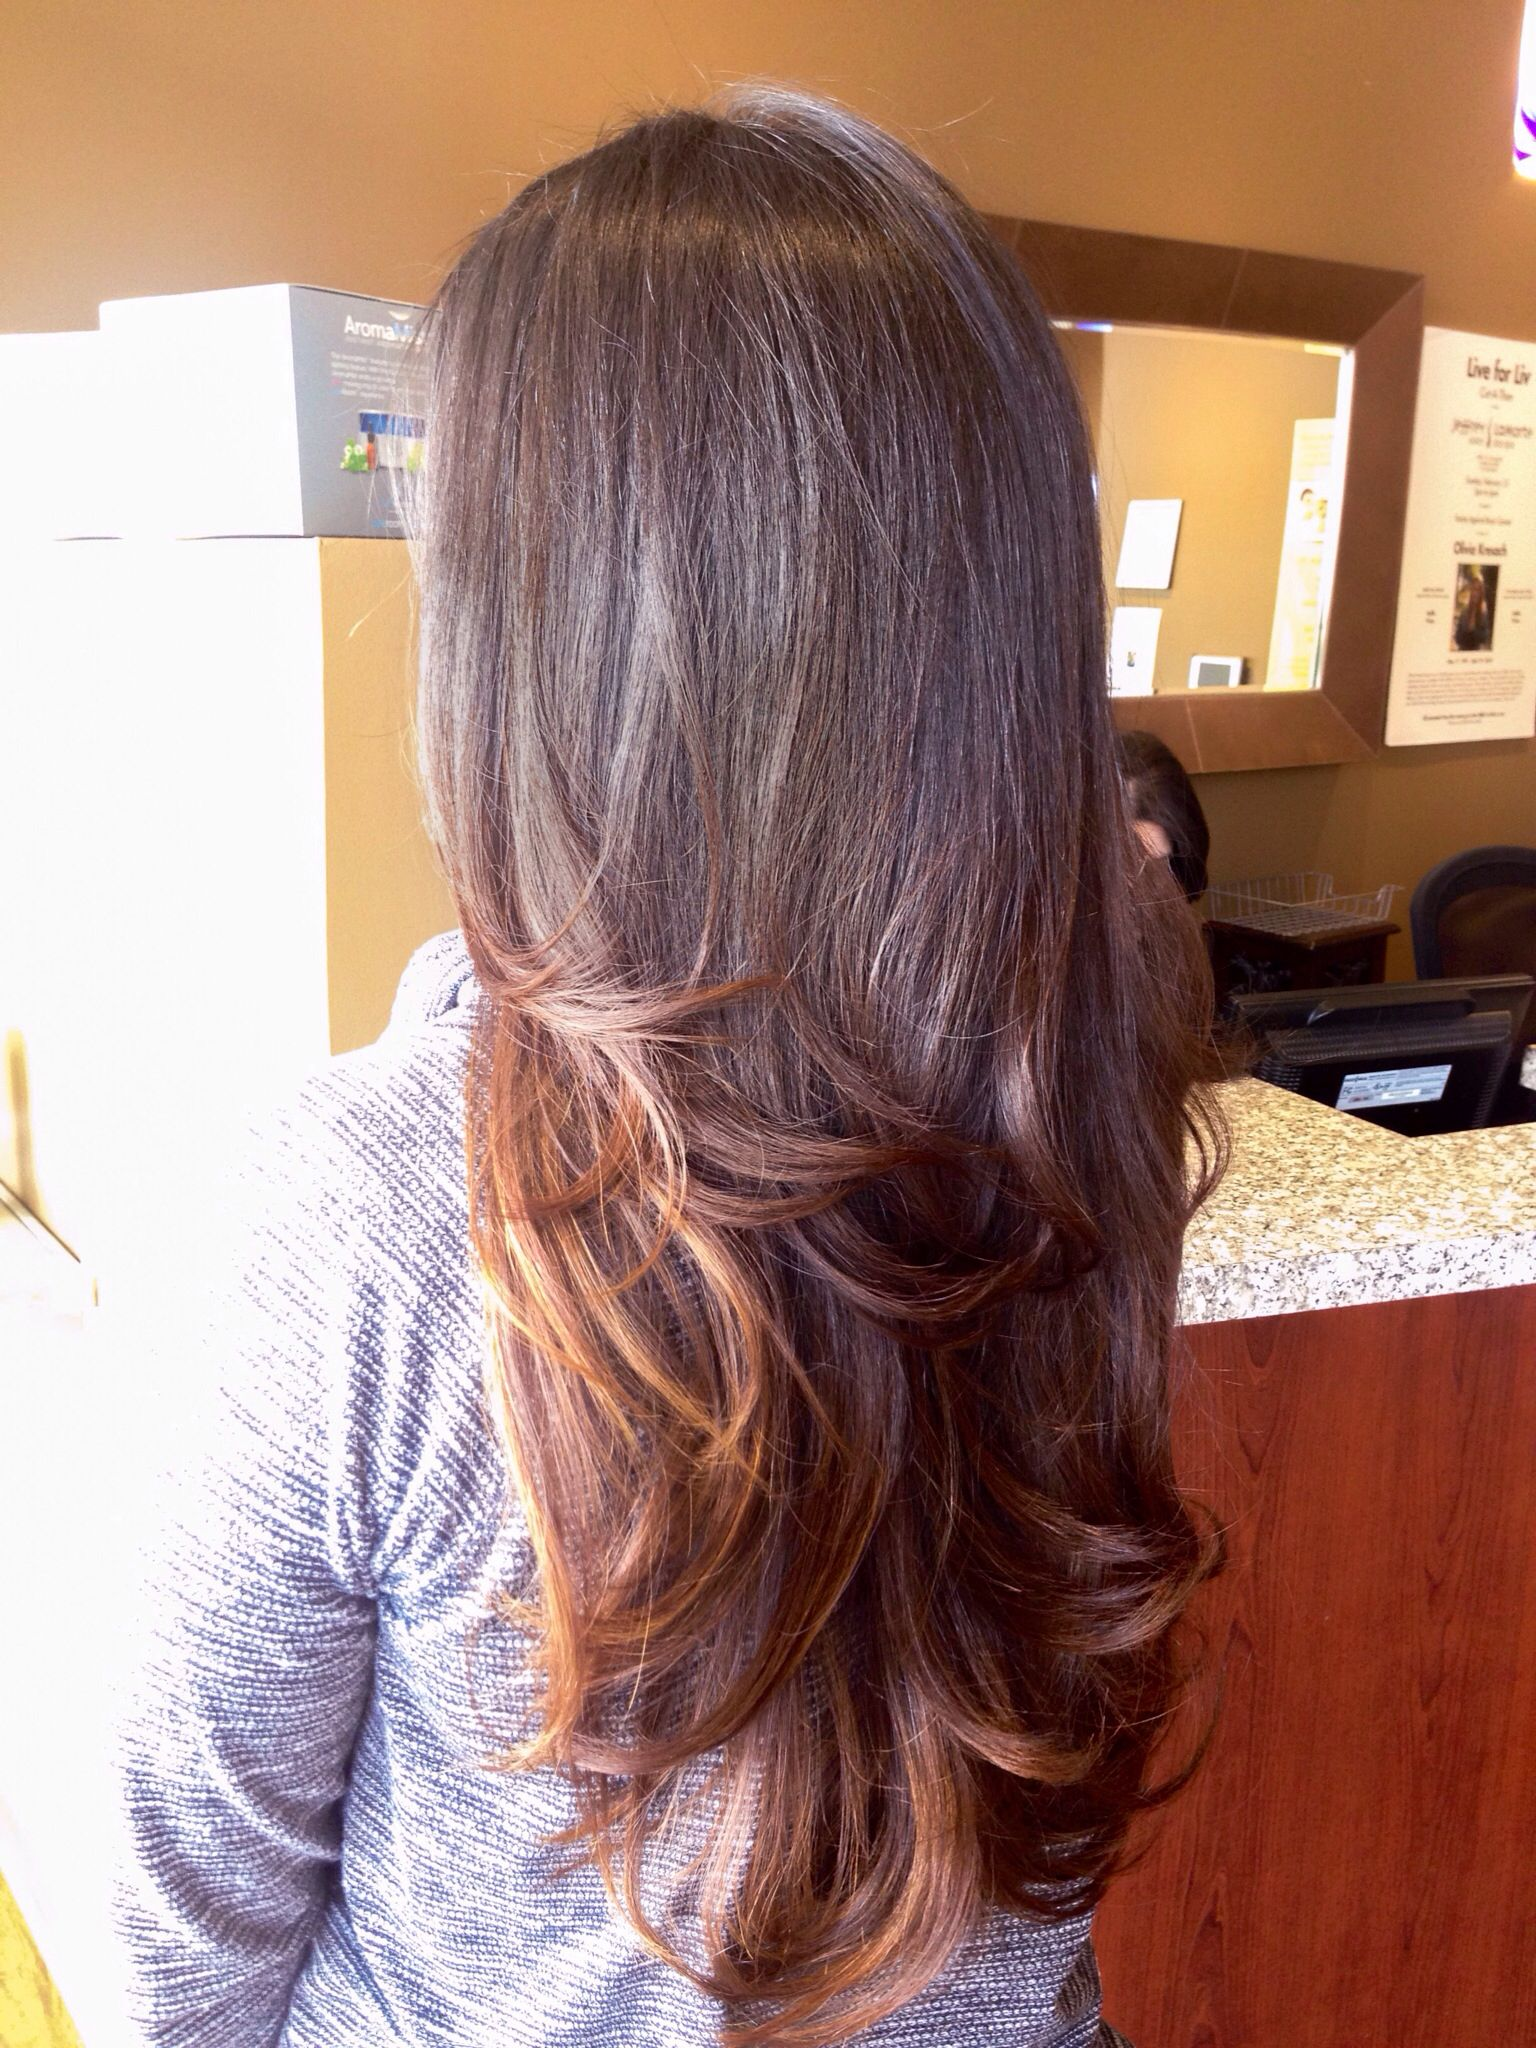 Flippy Bombshell Blowout With Medium Layers On Long Hair Blowout Curls Long Hair Styles Long Layered Hair